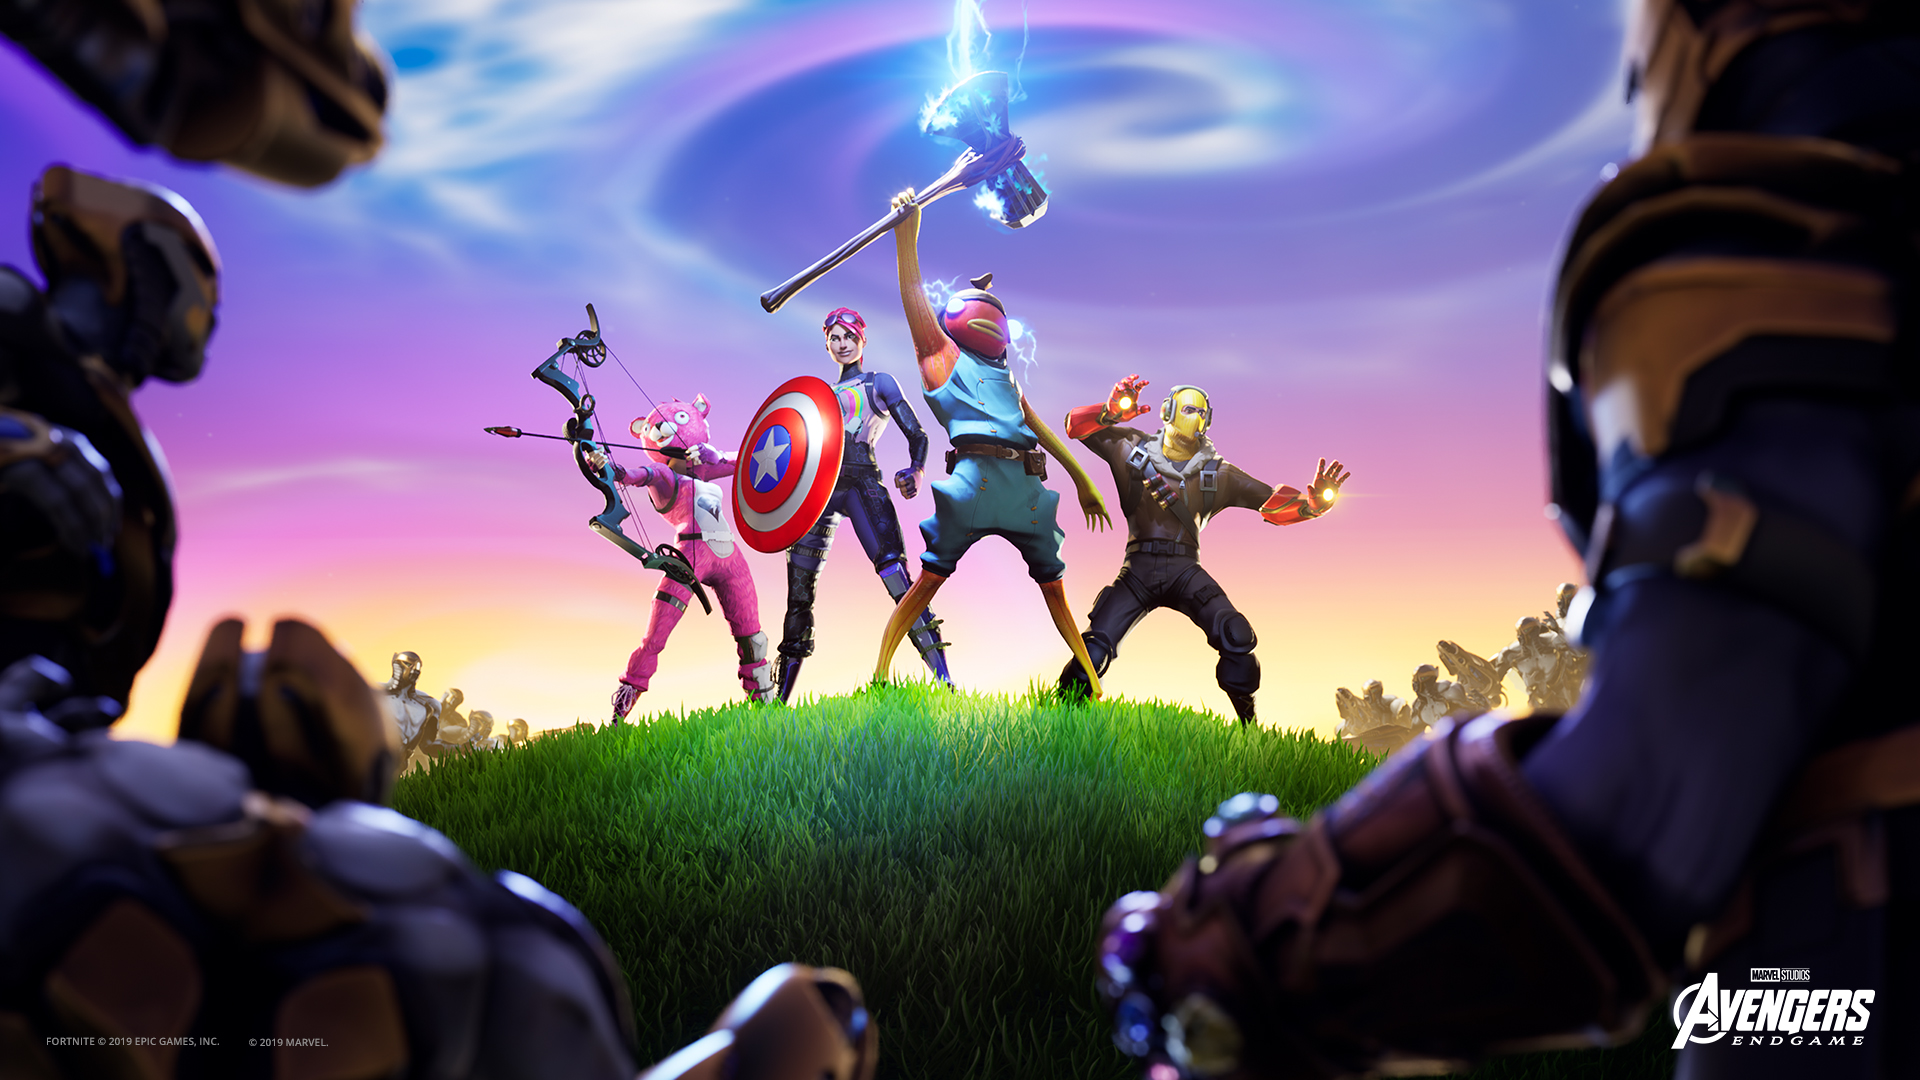 How To Collect Infinity Stones In Fortnite Endgame Ltm Dot - avengers endgame roblox event